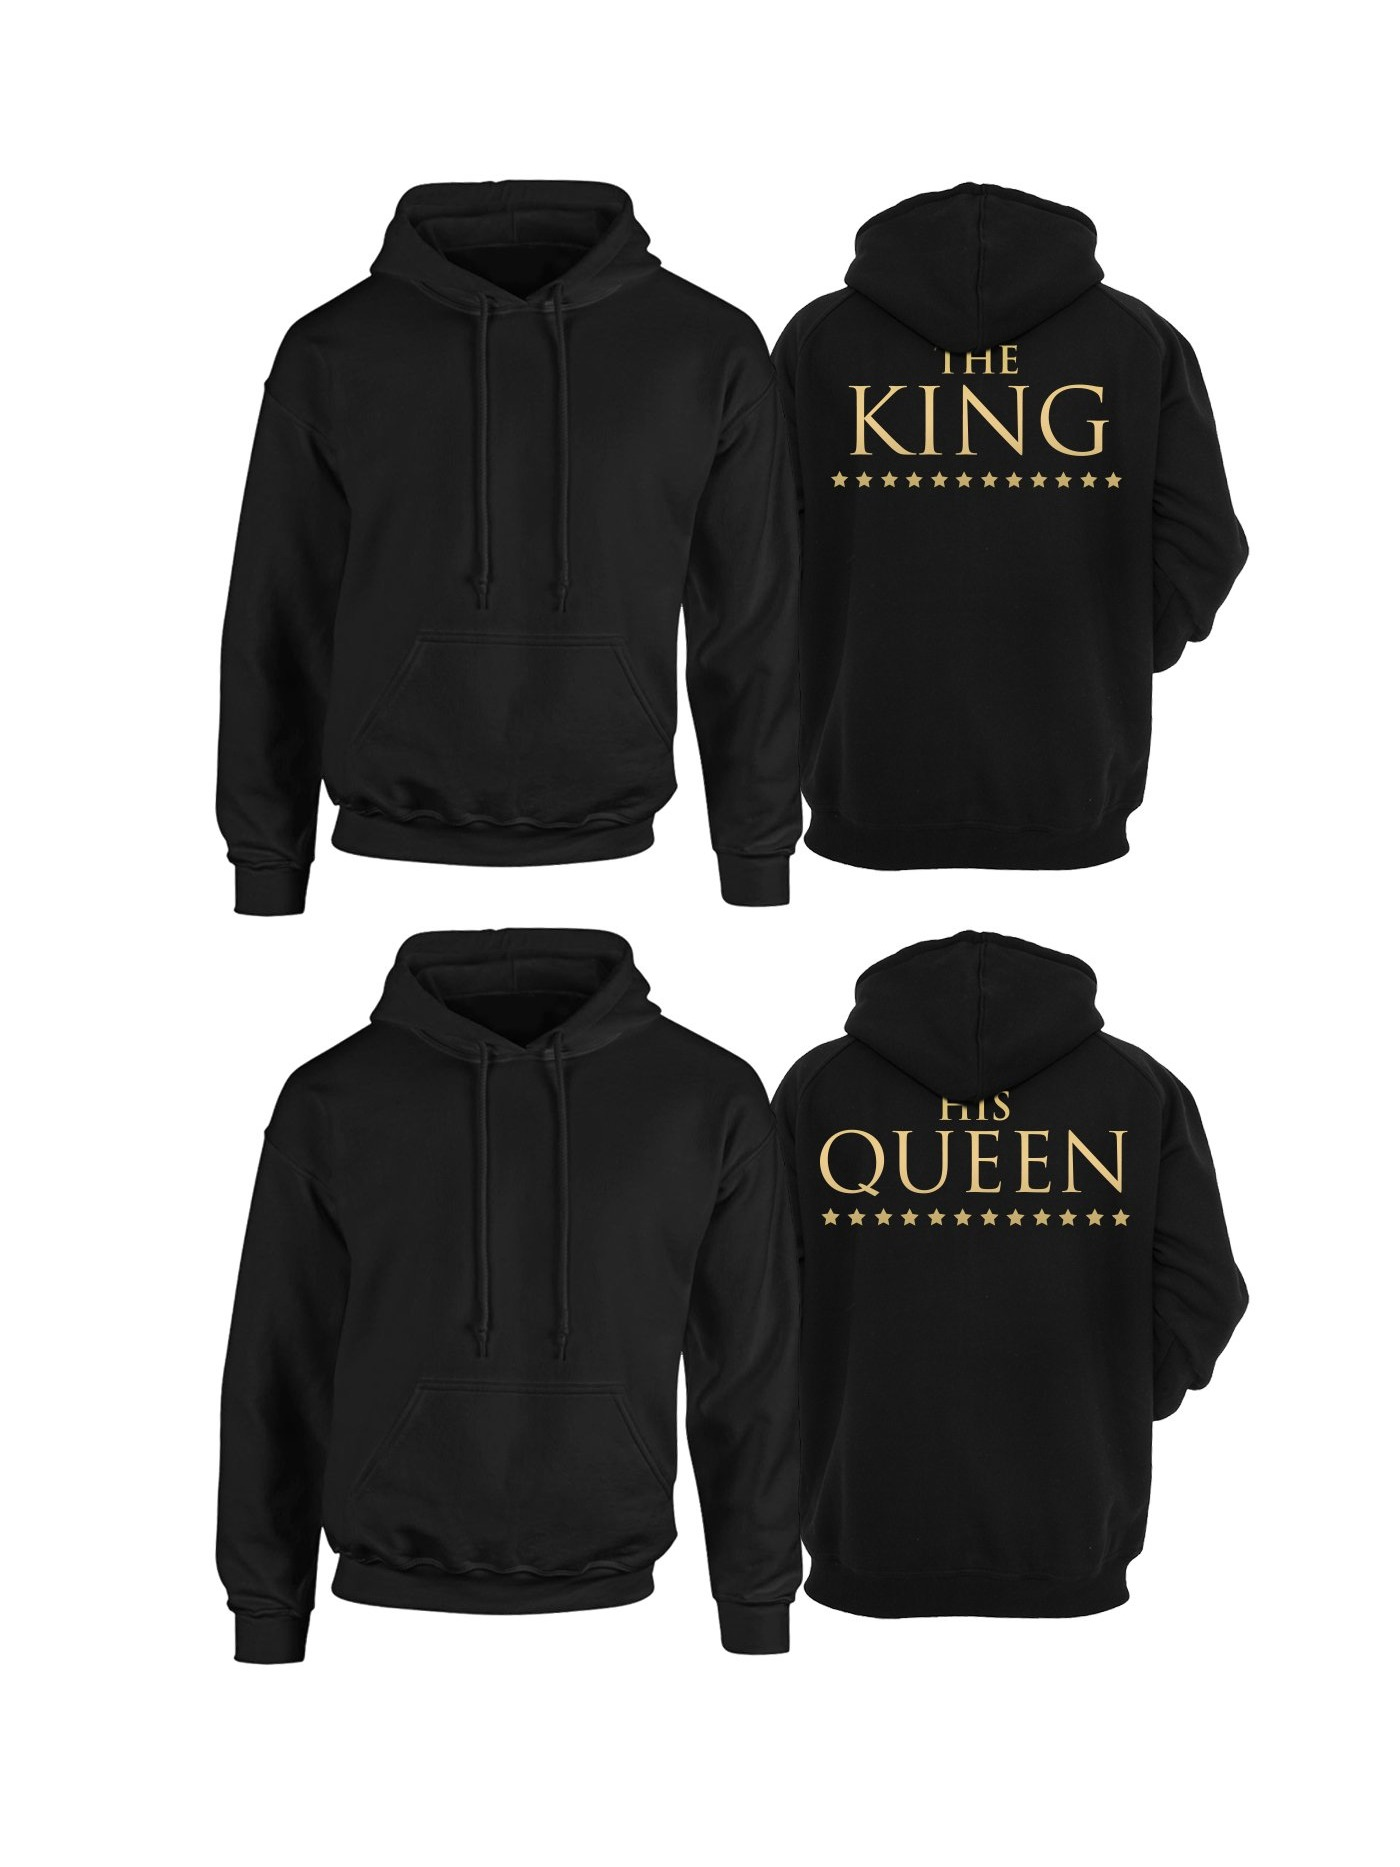 0a87a0d1d Mikiny pre pár Her King His Queen